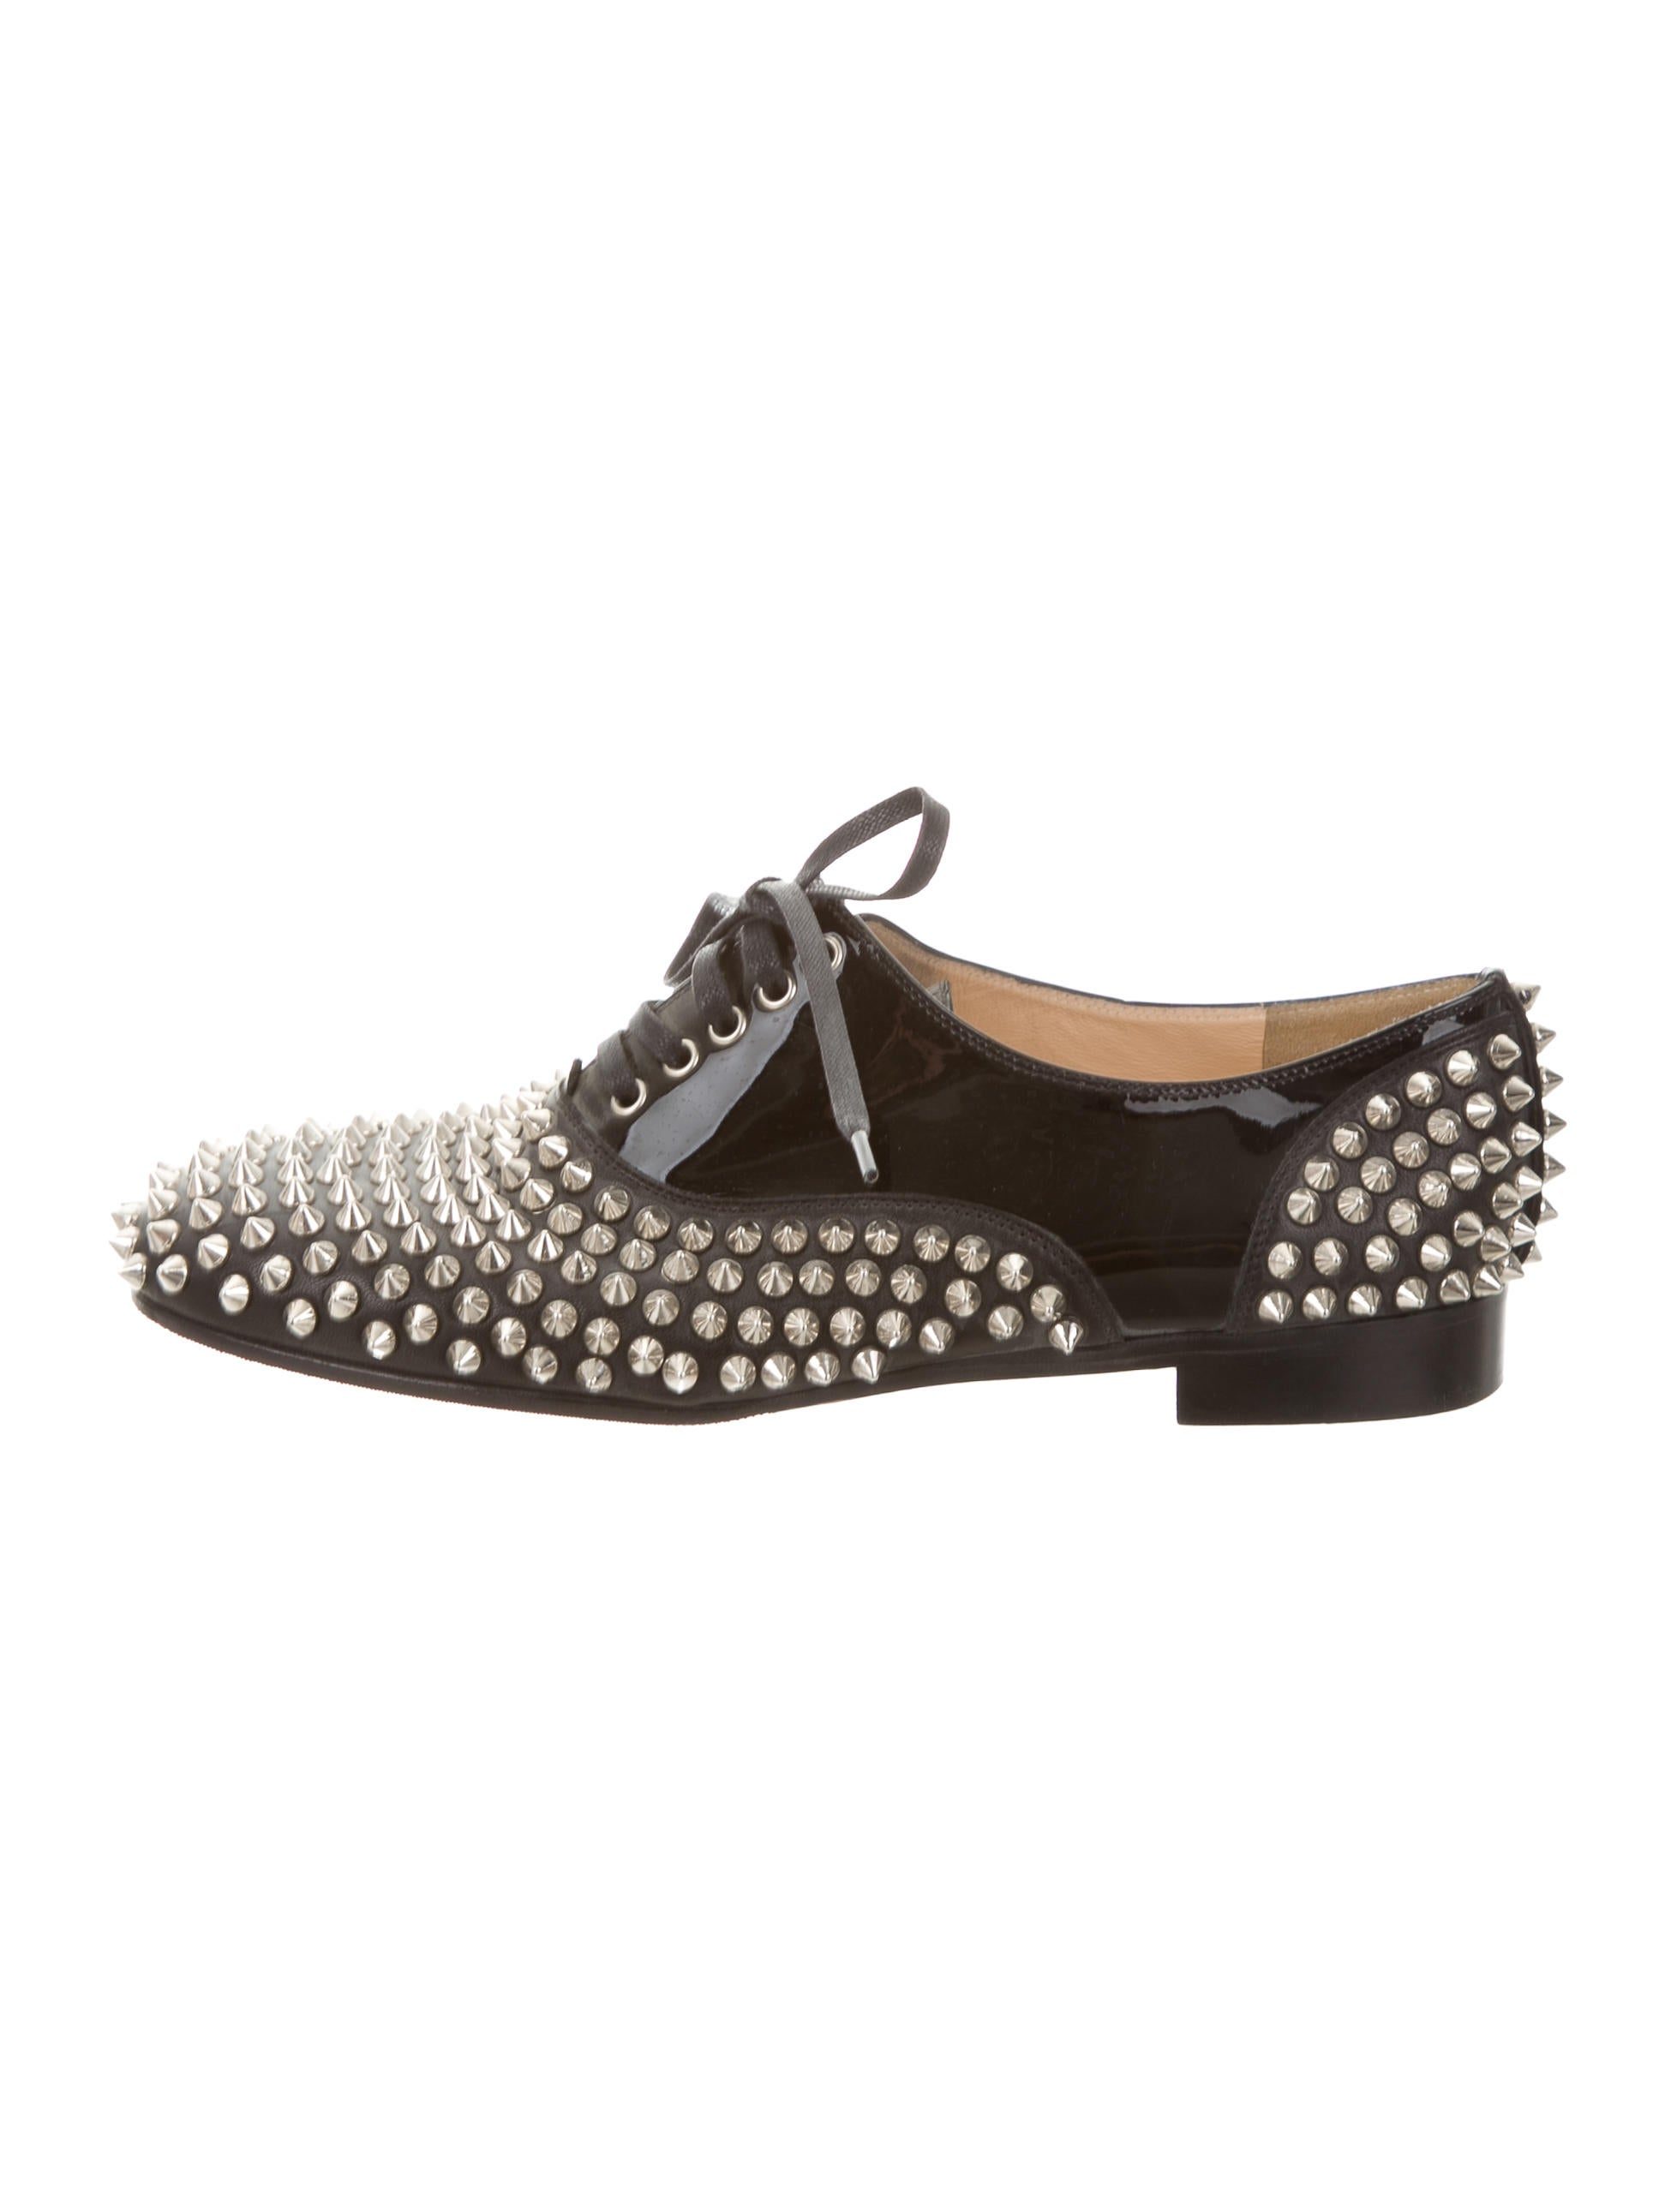 d55e9554b29f Christian Louboutin Freddy Spiked Oxfords - Shoes - CHT67353